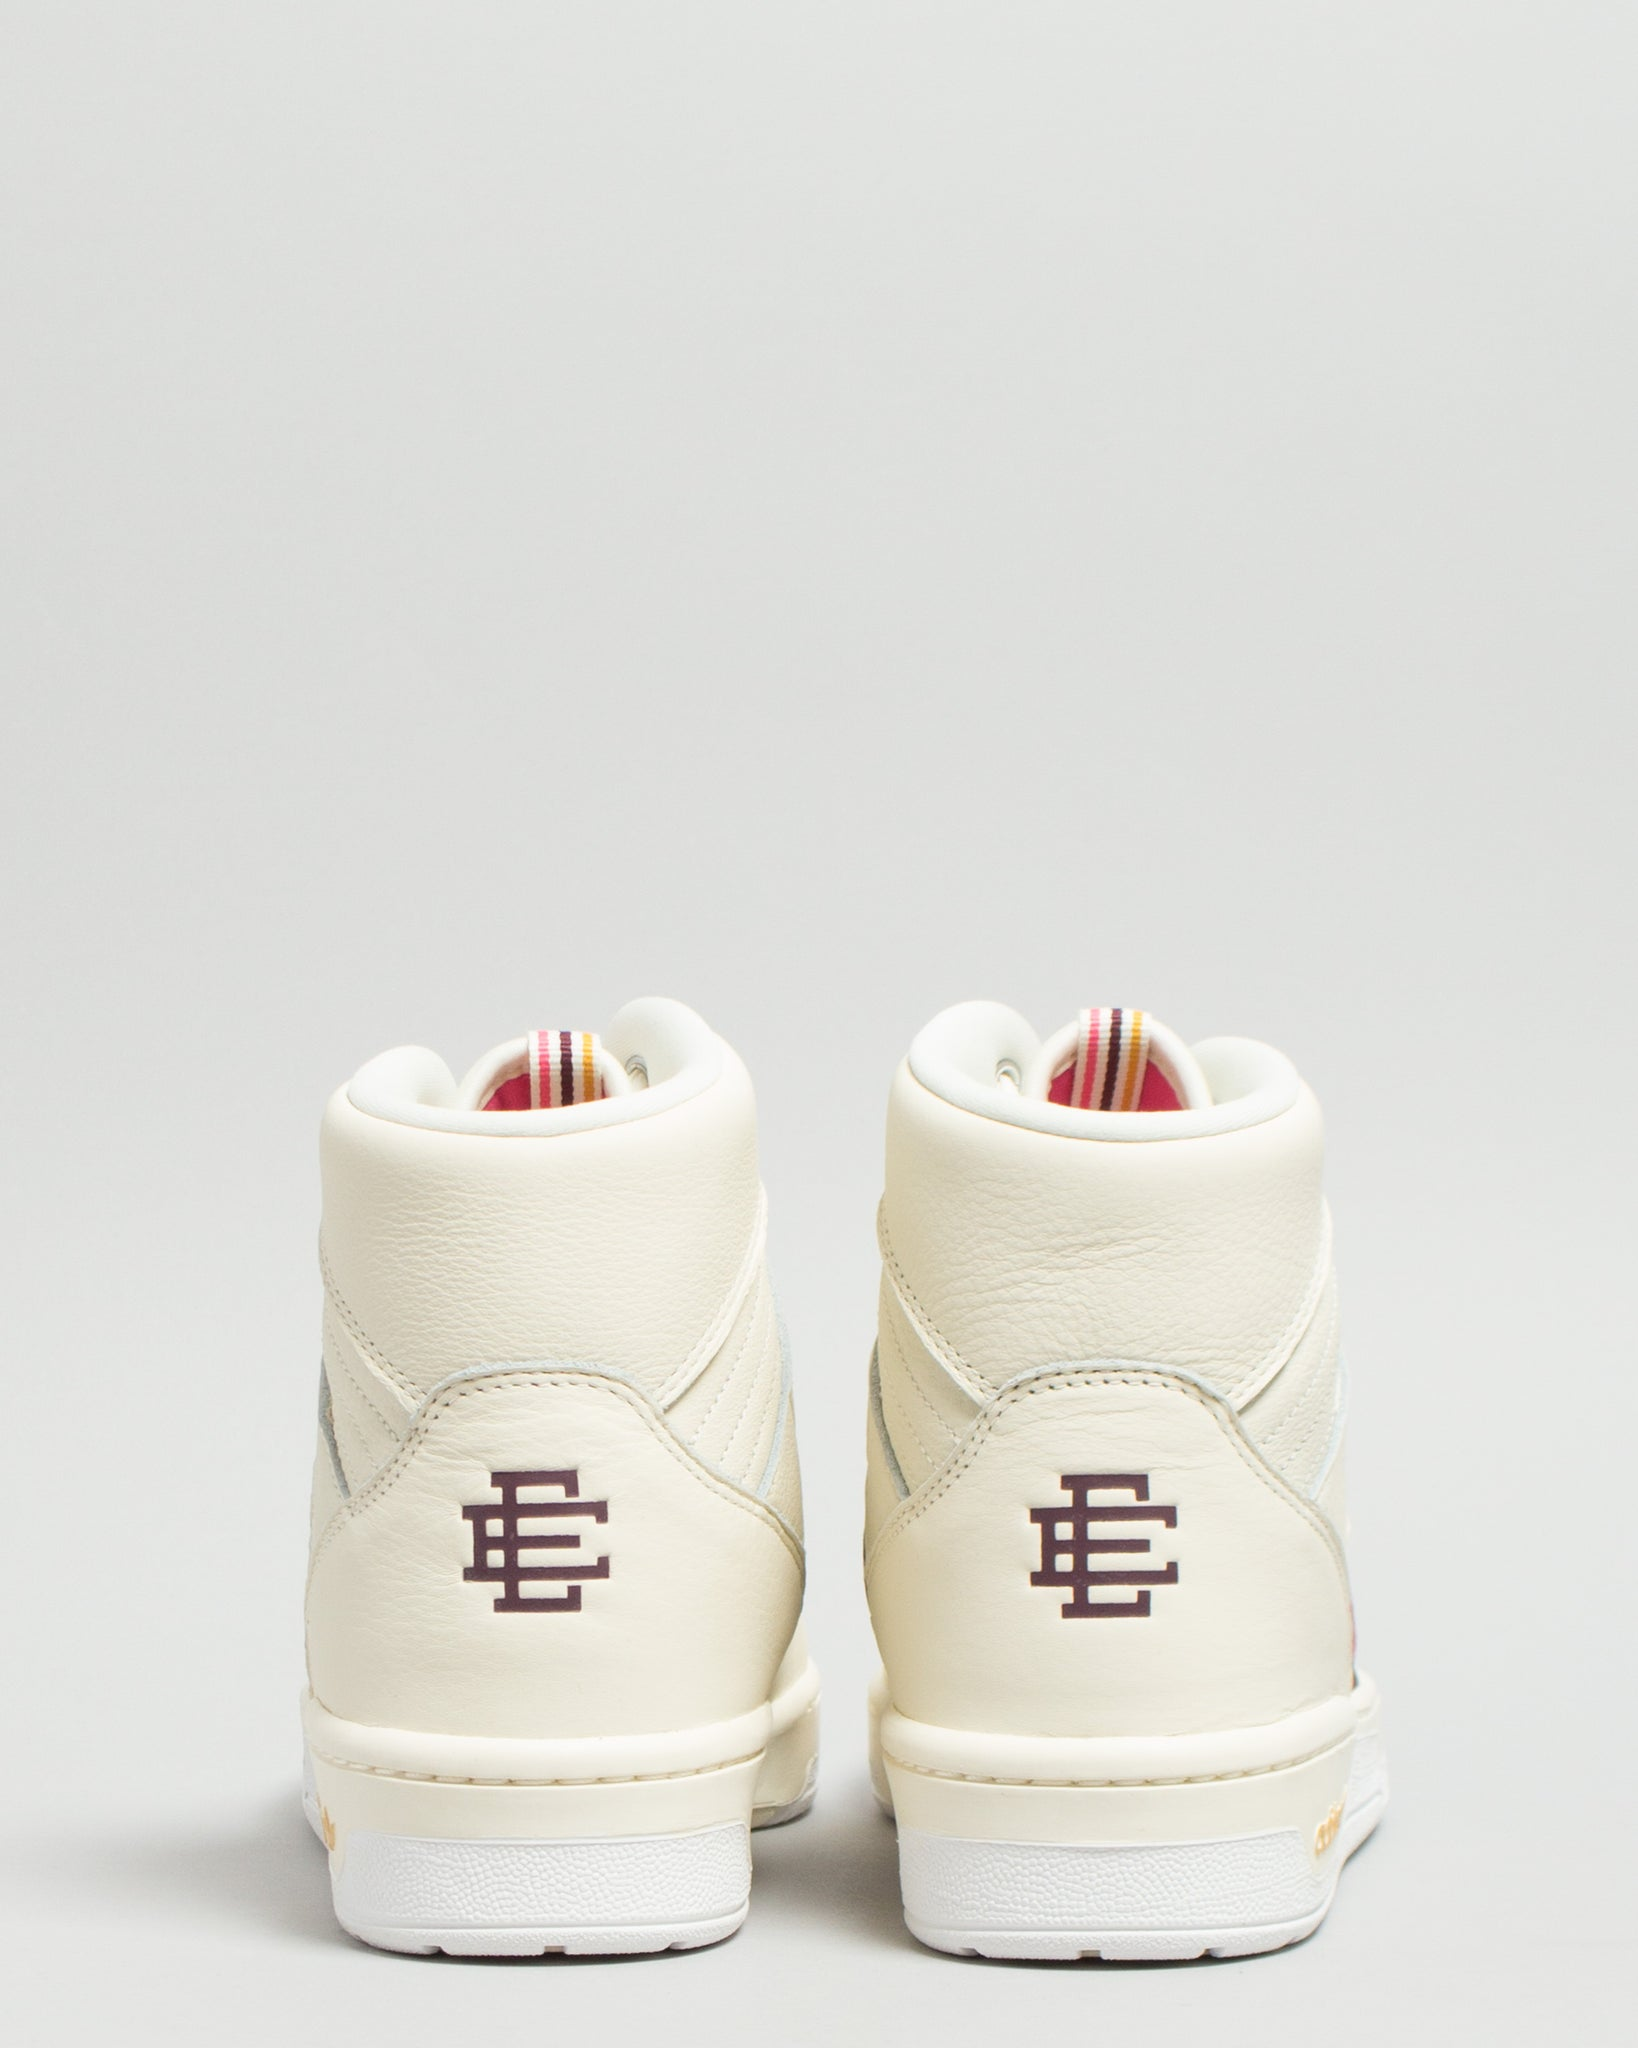 Eric Emanuel Rivalry HI OG White/Maroon